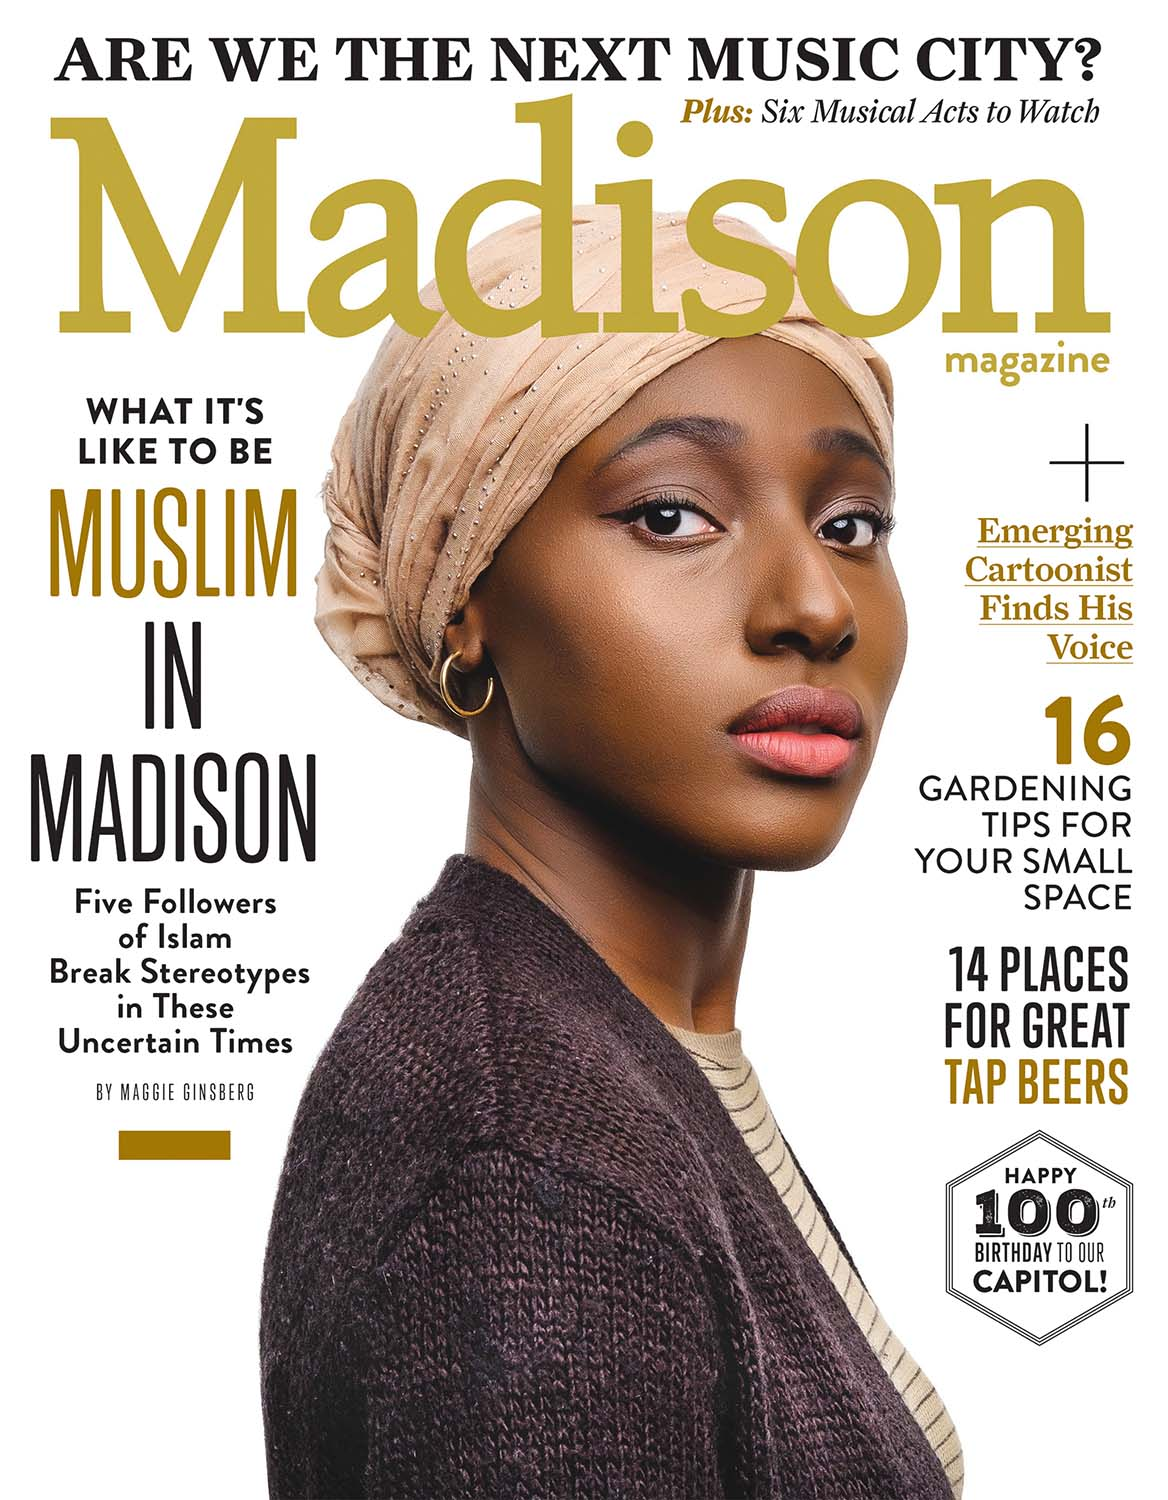 magazine cover photo with powerful studio portrait of an African American Muslim woman